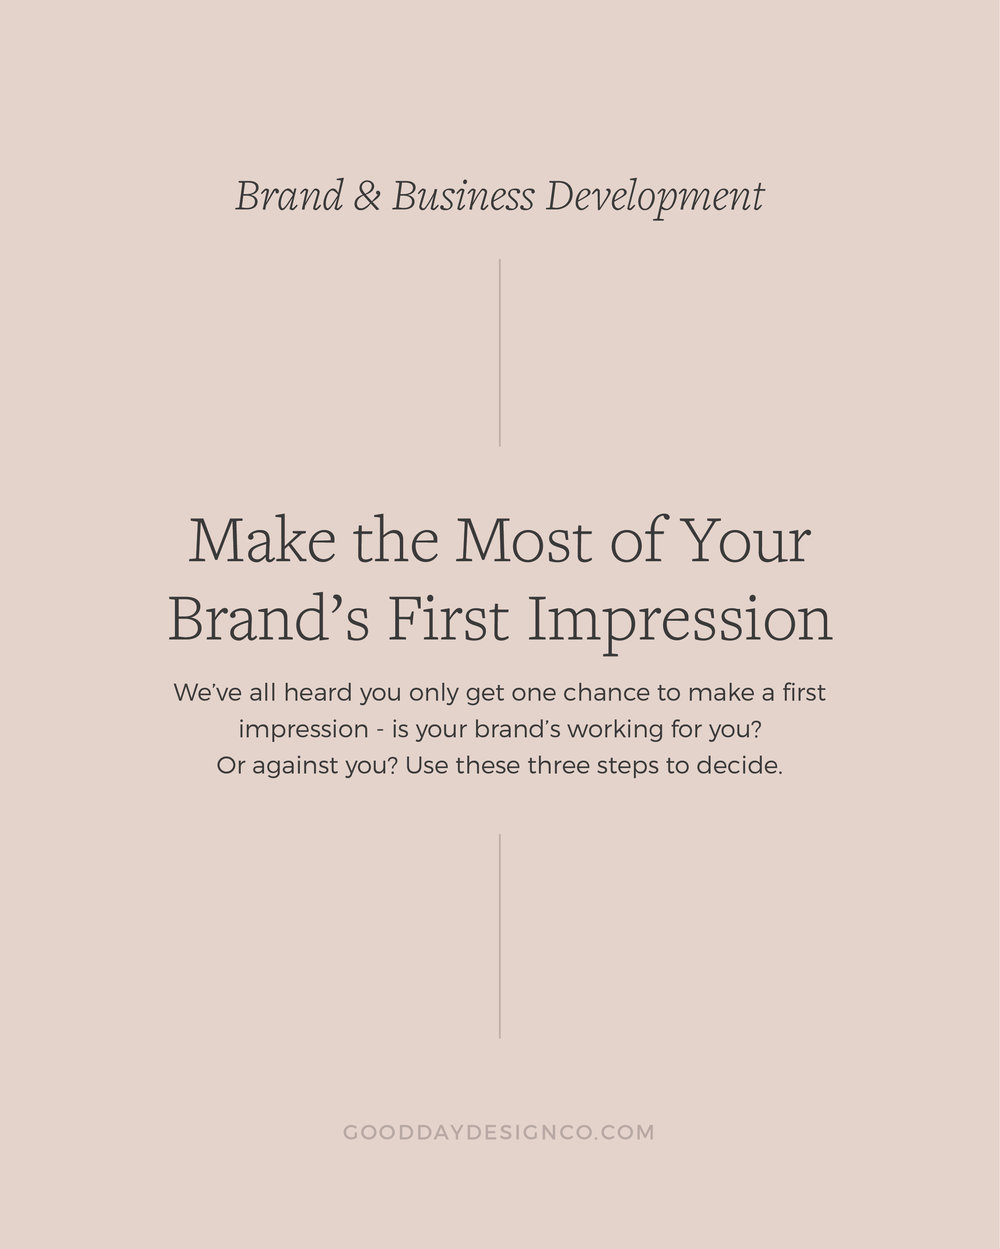 Good Day Design Co Make the Most of Your Brand's First Impression-12.jpg